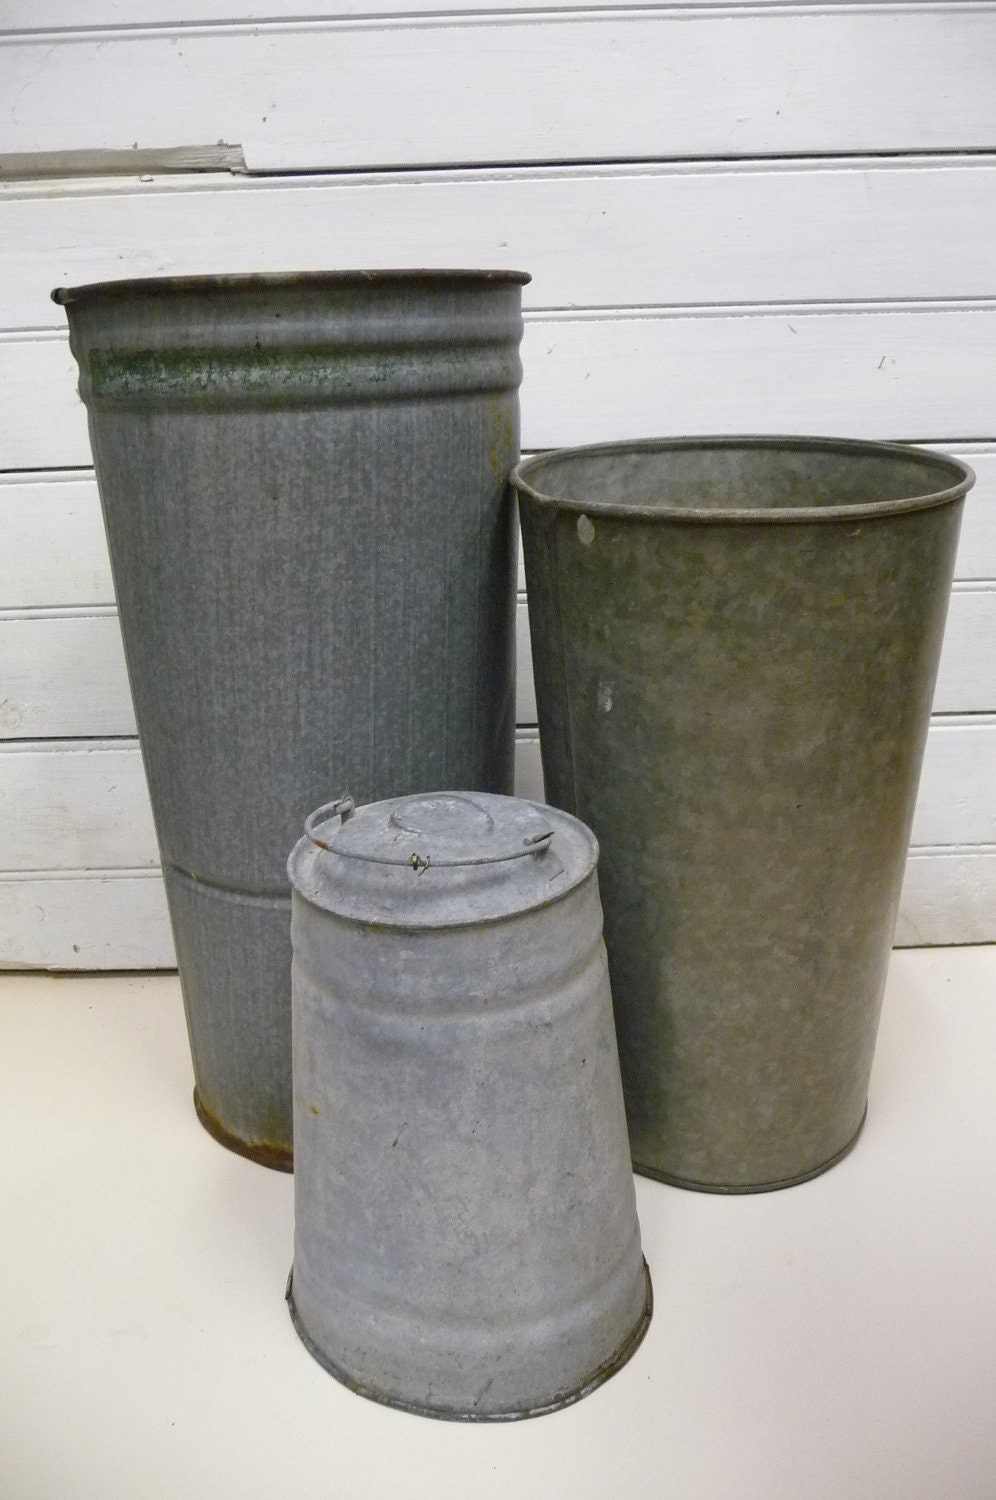 3 sap buckets vintage galvanized metal farmhouse three